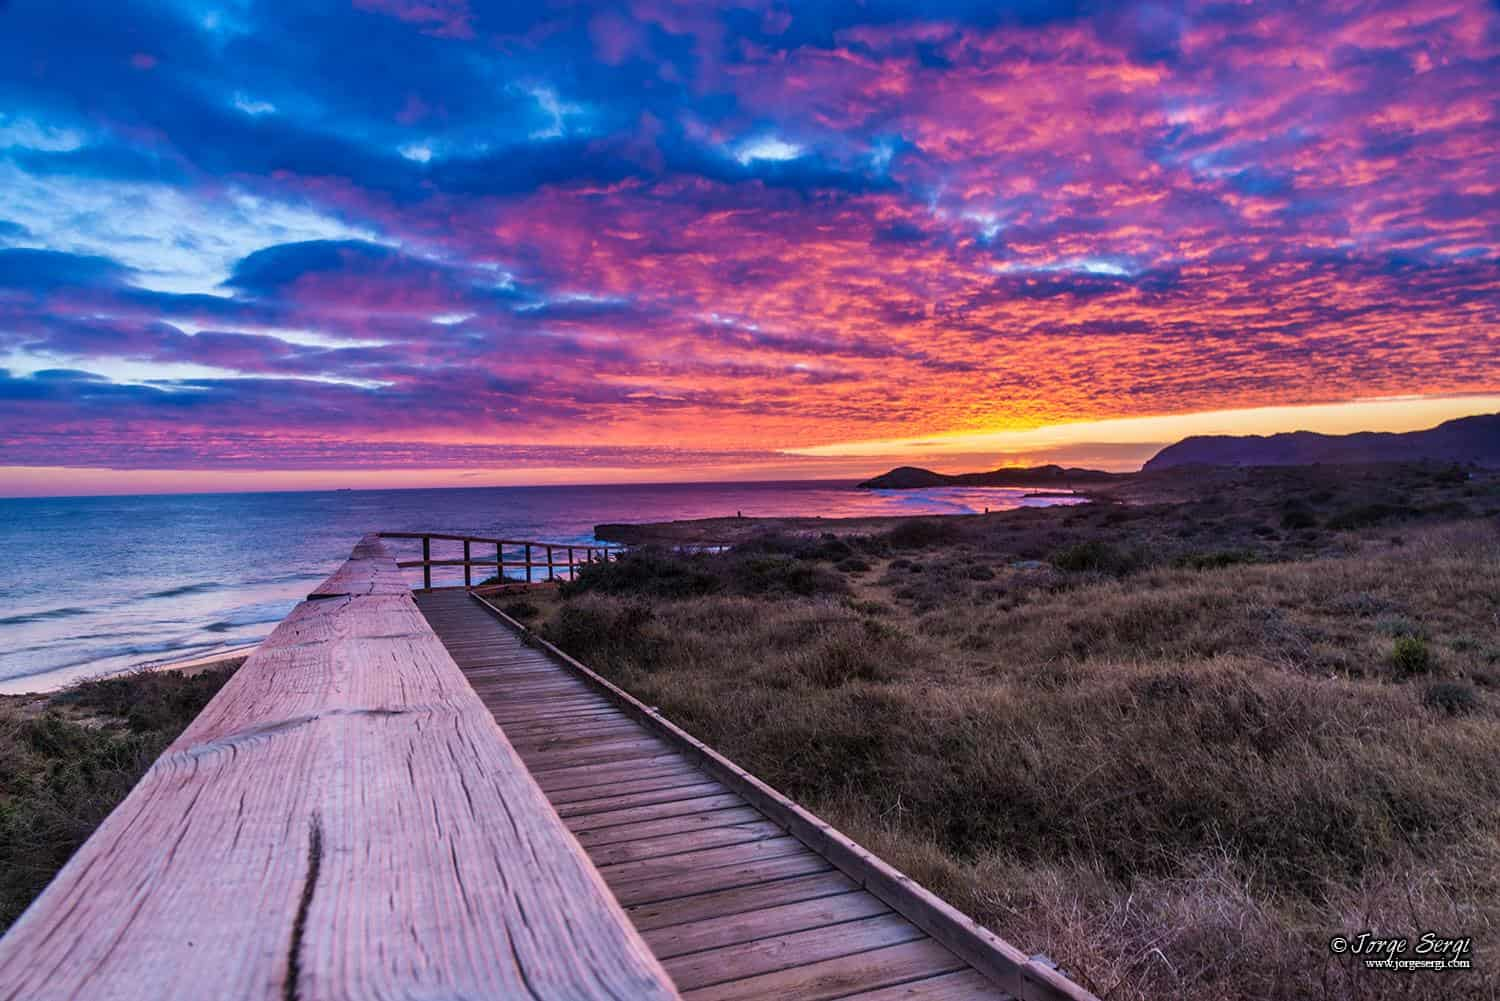 Welcome to Calblanque, paradise - Photography: Jorge Sergi